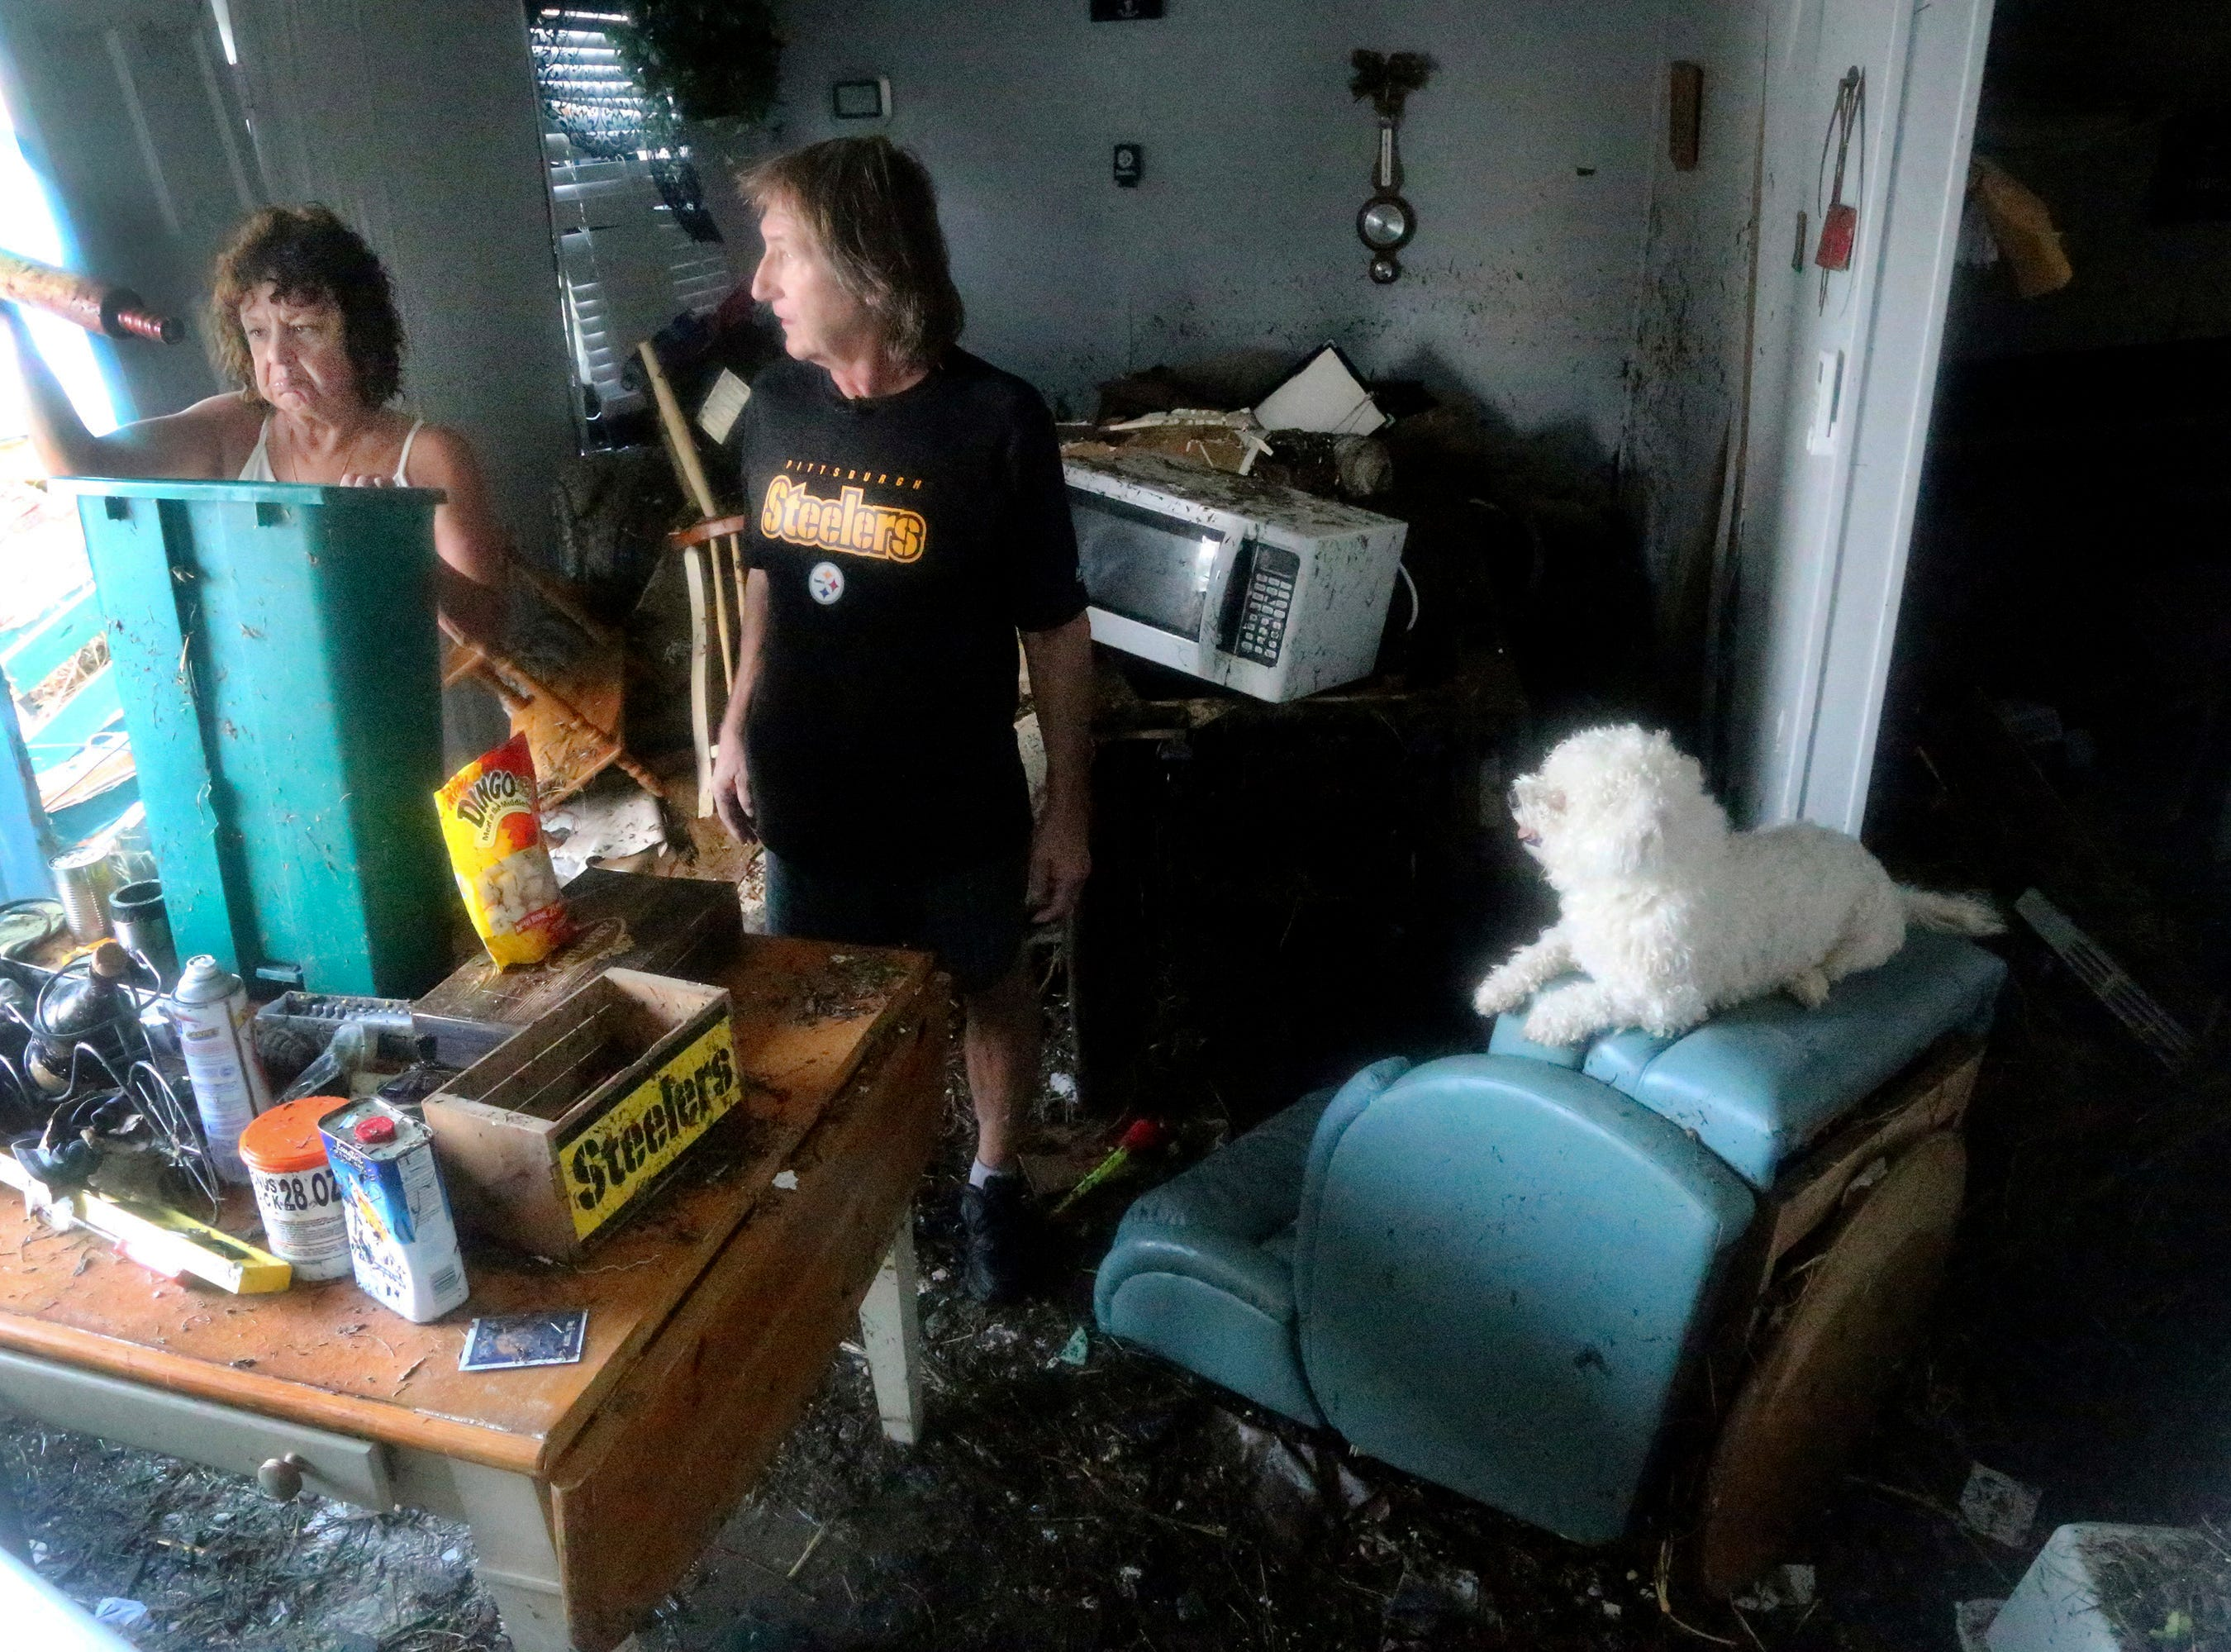 Cindy Murphy, 58, left, finds a rolling pin while searching for her husband James Murphy's medication on Thursday, Oct. 11, 2018, in what remains of their home on a coastal stretch of Port St. Joe, Fla. The couple's dog, J.J., at right, survived, but they have been unable to locate their cat. Cindy was surprised to find the rolling pin, which did not belong to her and was among dozens of items from others homes which were displaced by Hurricane Michael's violent storm surge and wind as it made landfall on Wednesday in the Florida Panhandle. (Douglas R. Clifford/Tampa Bay Times via AP)